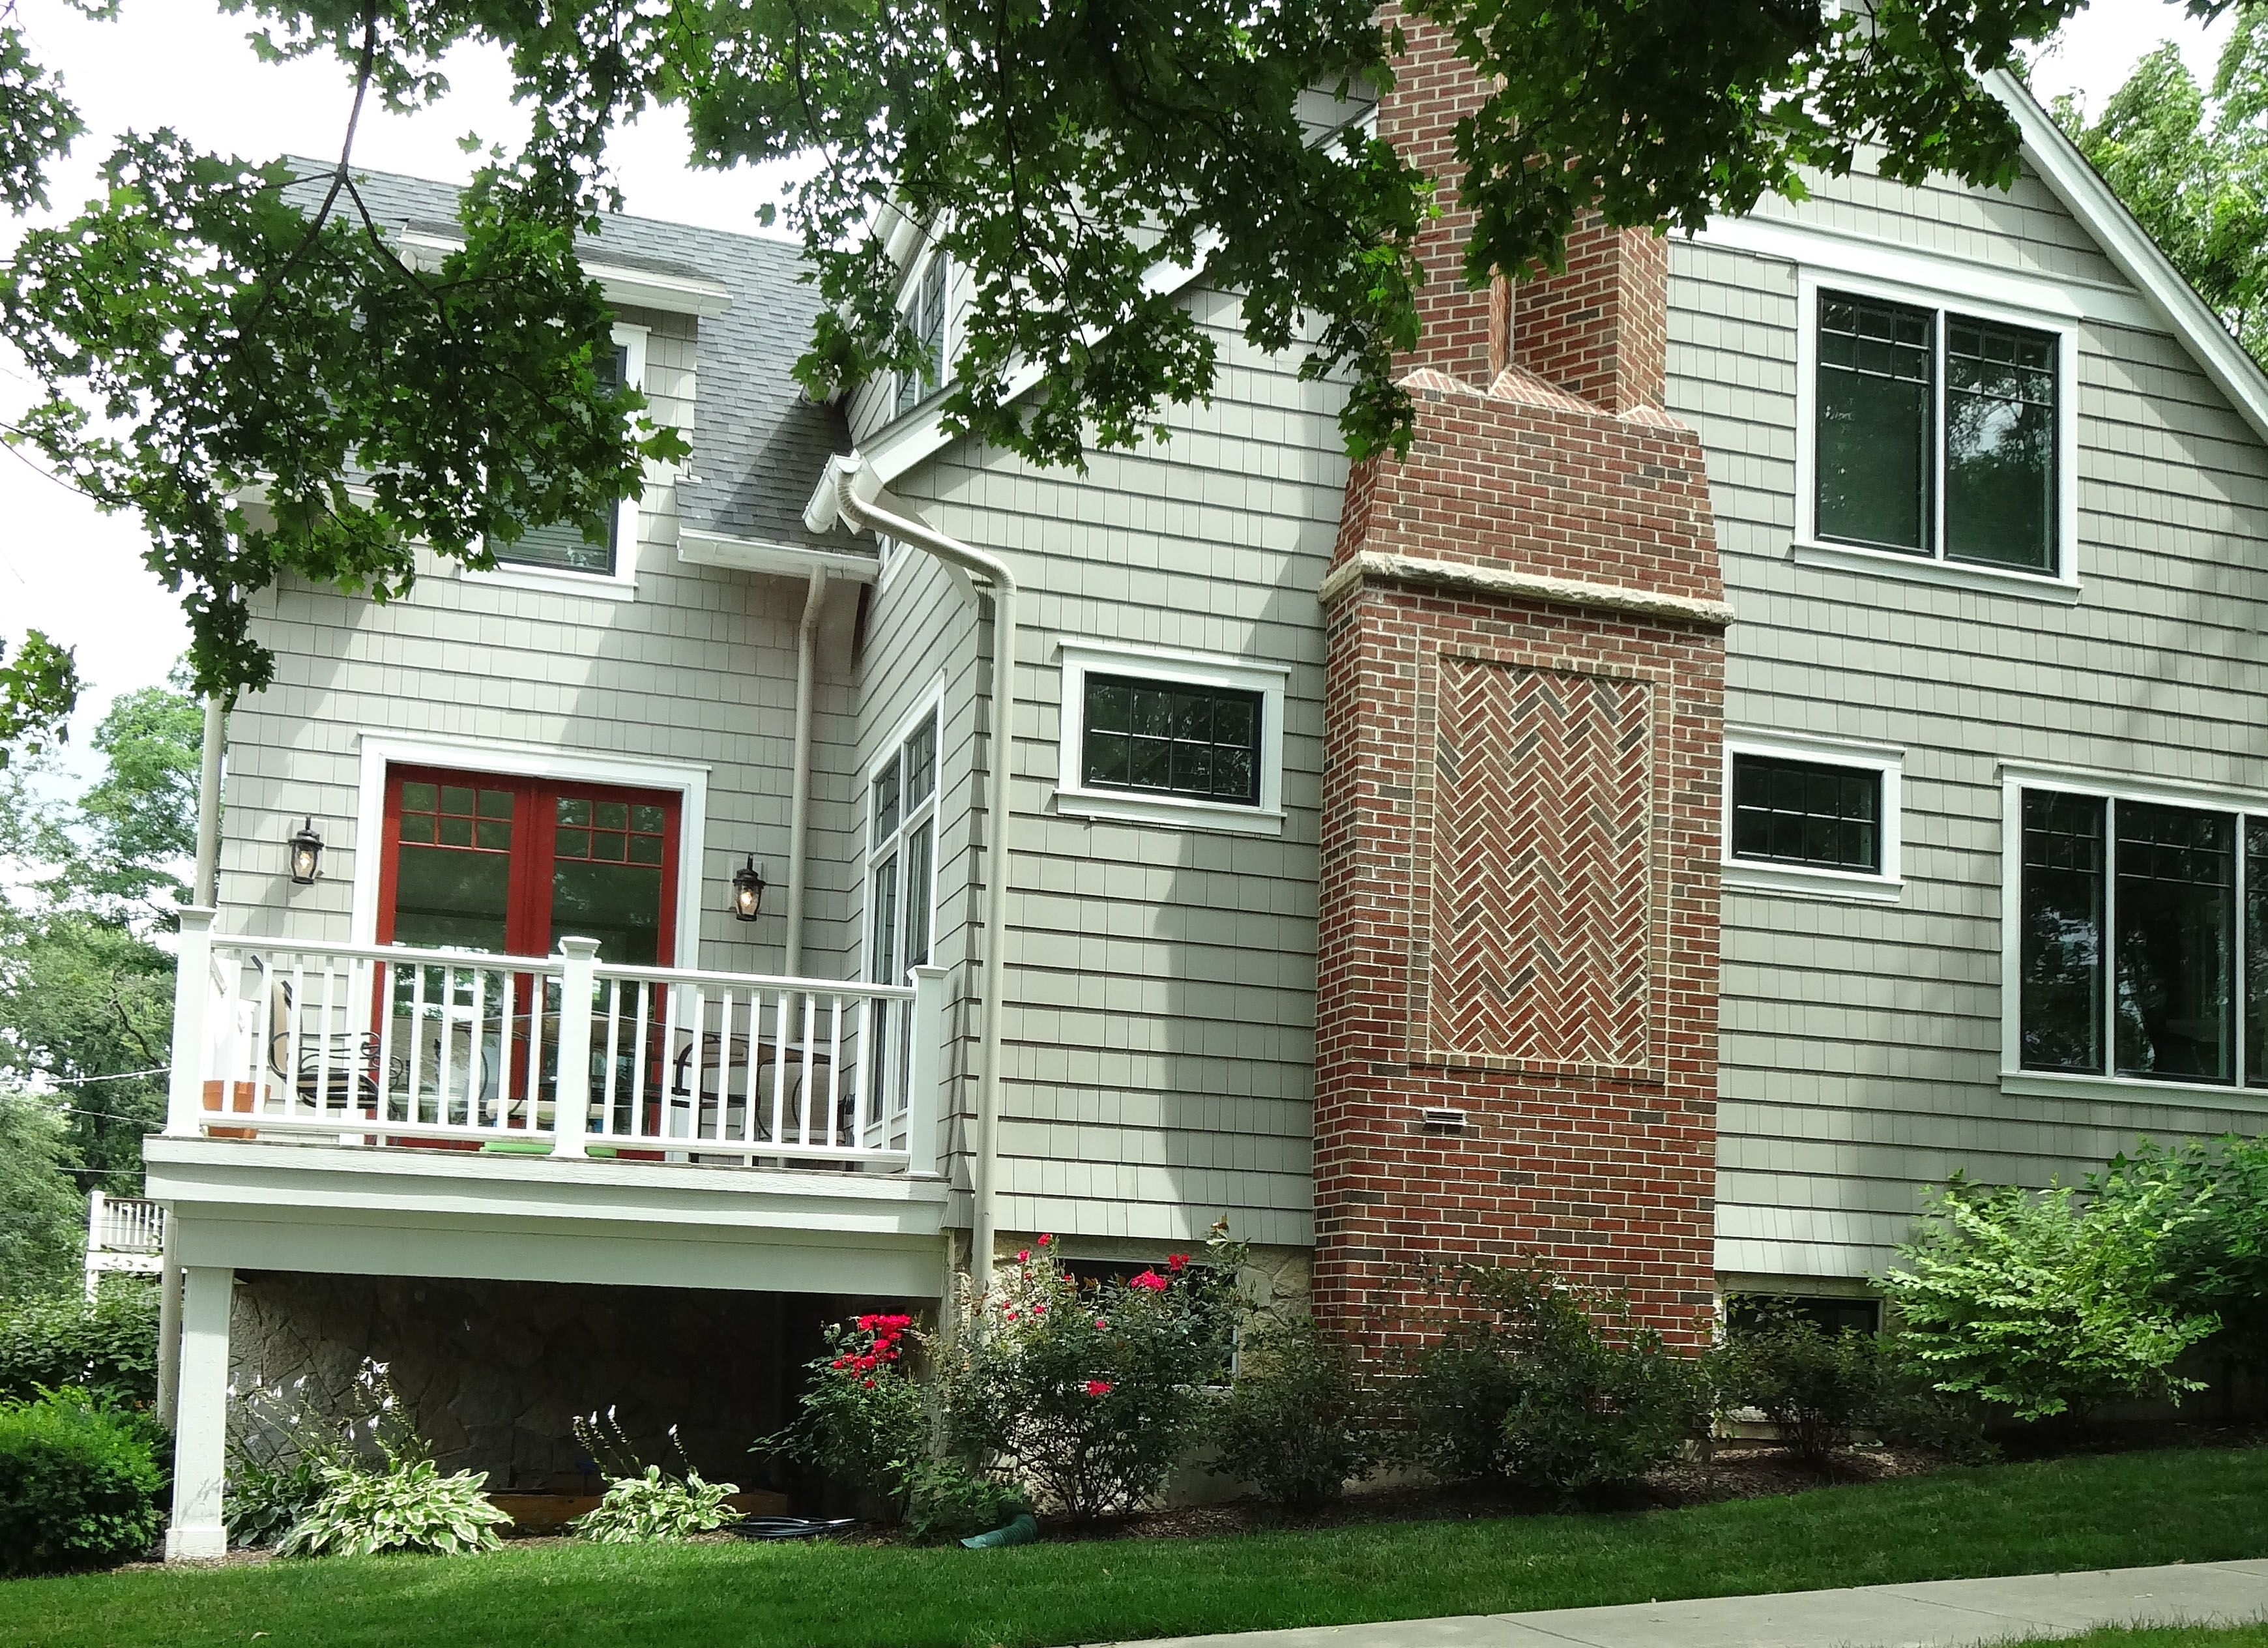 Earthy Green With Red Brick Not Christmassy As One Would Expect Green Siding Exterior Renovation Brick Chimney